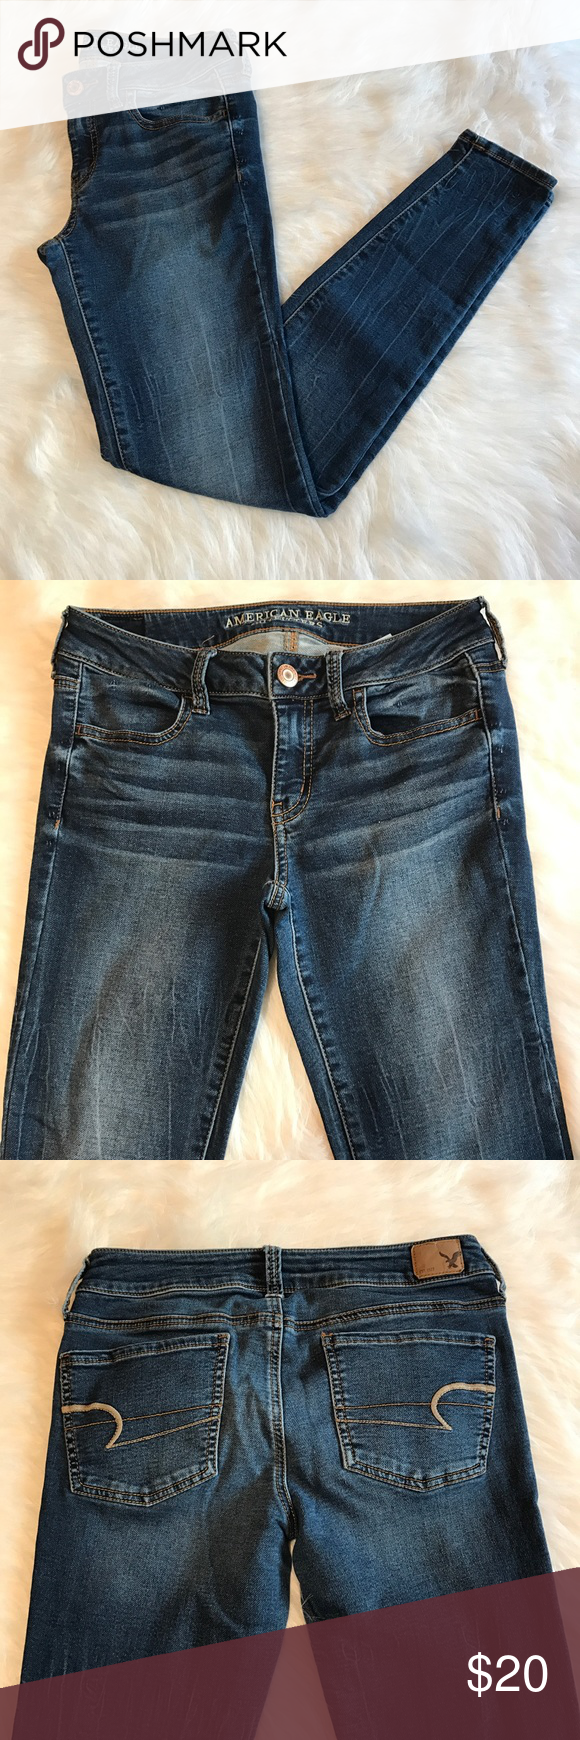 """Women's AEO jeggings Women's American Eagle Outfitters jeggings in excellent used condition. Size 4 regular, waist 14.5"""" inseam 28.5"""". Medium-dark wash denim American Eagle Outfitters Jeans"""